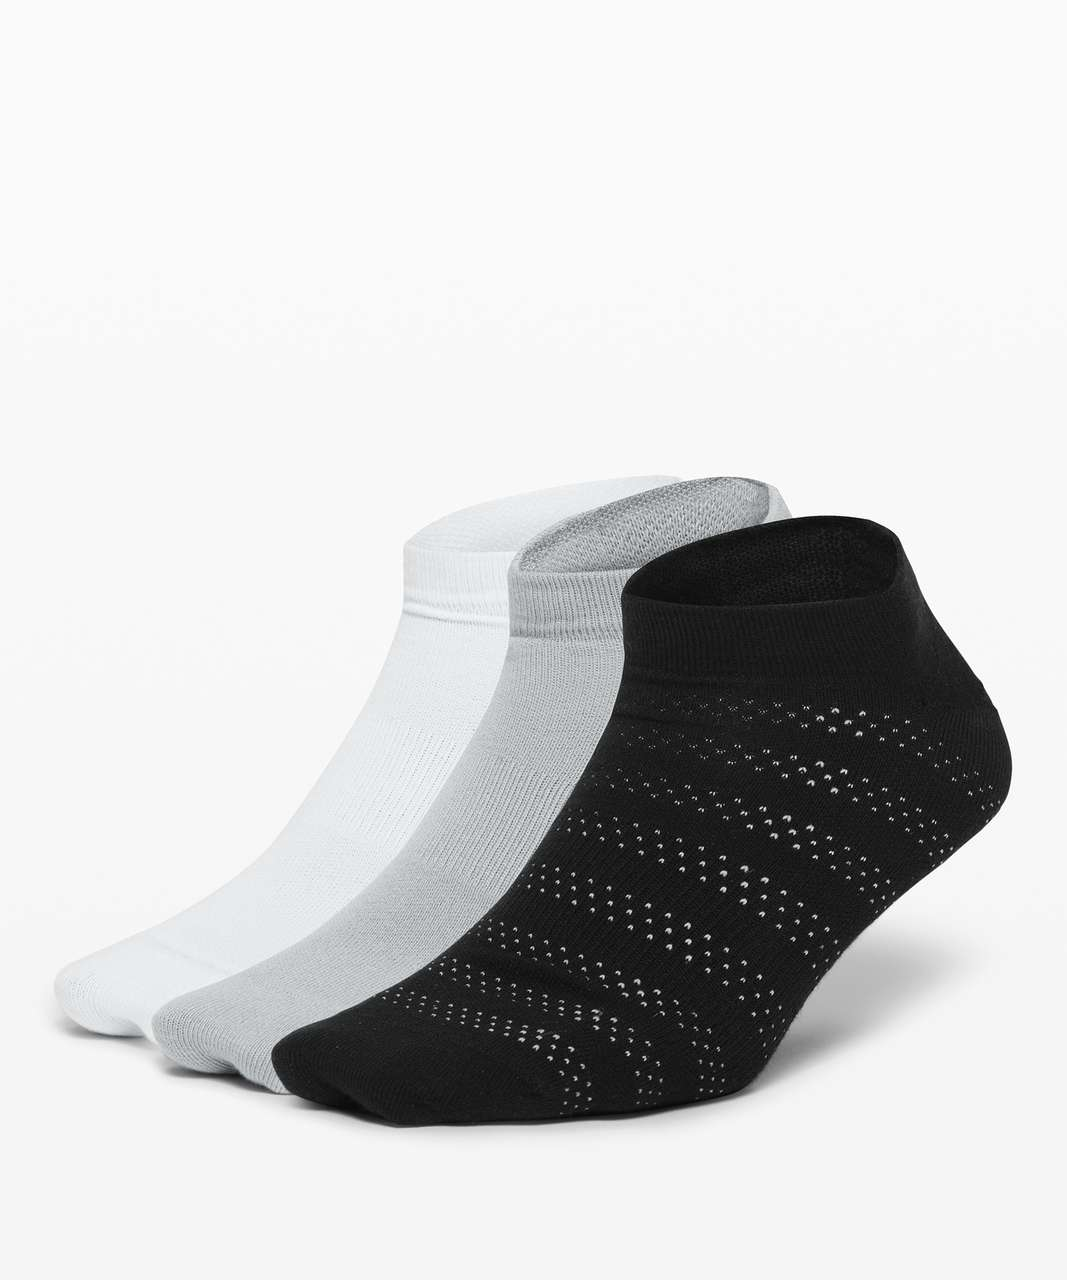 Lululemon On the Fly Sock *3-Pack - Black / Silver Drop / White